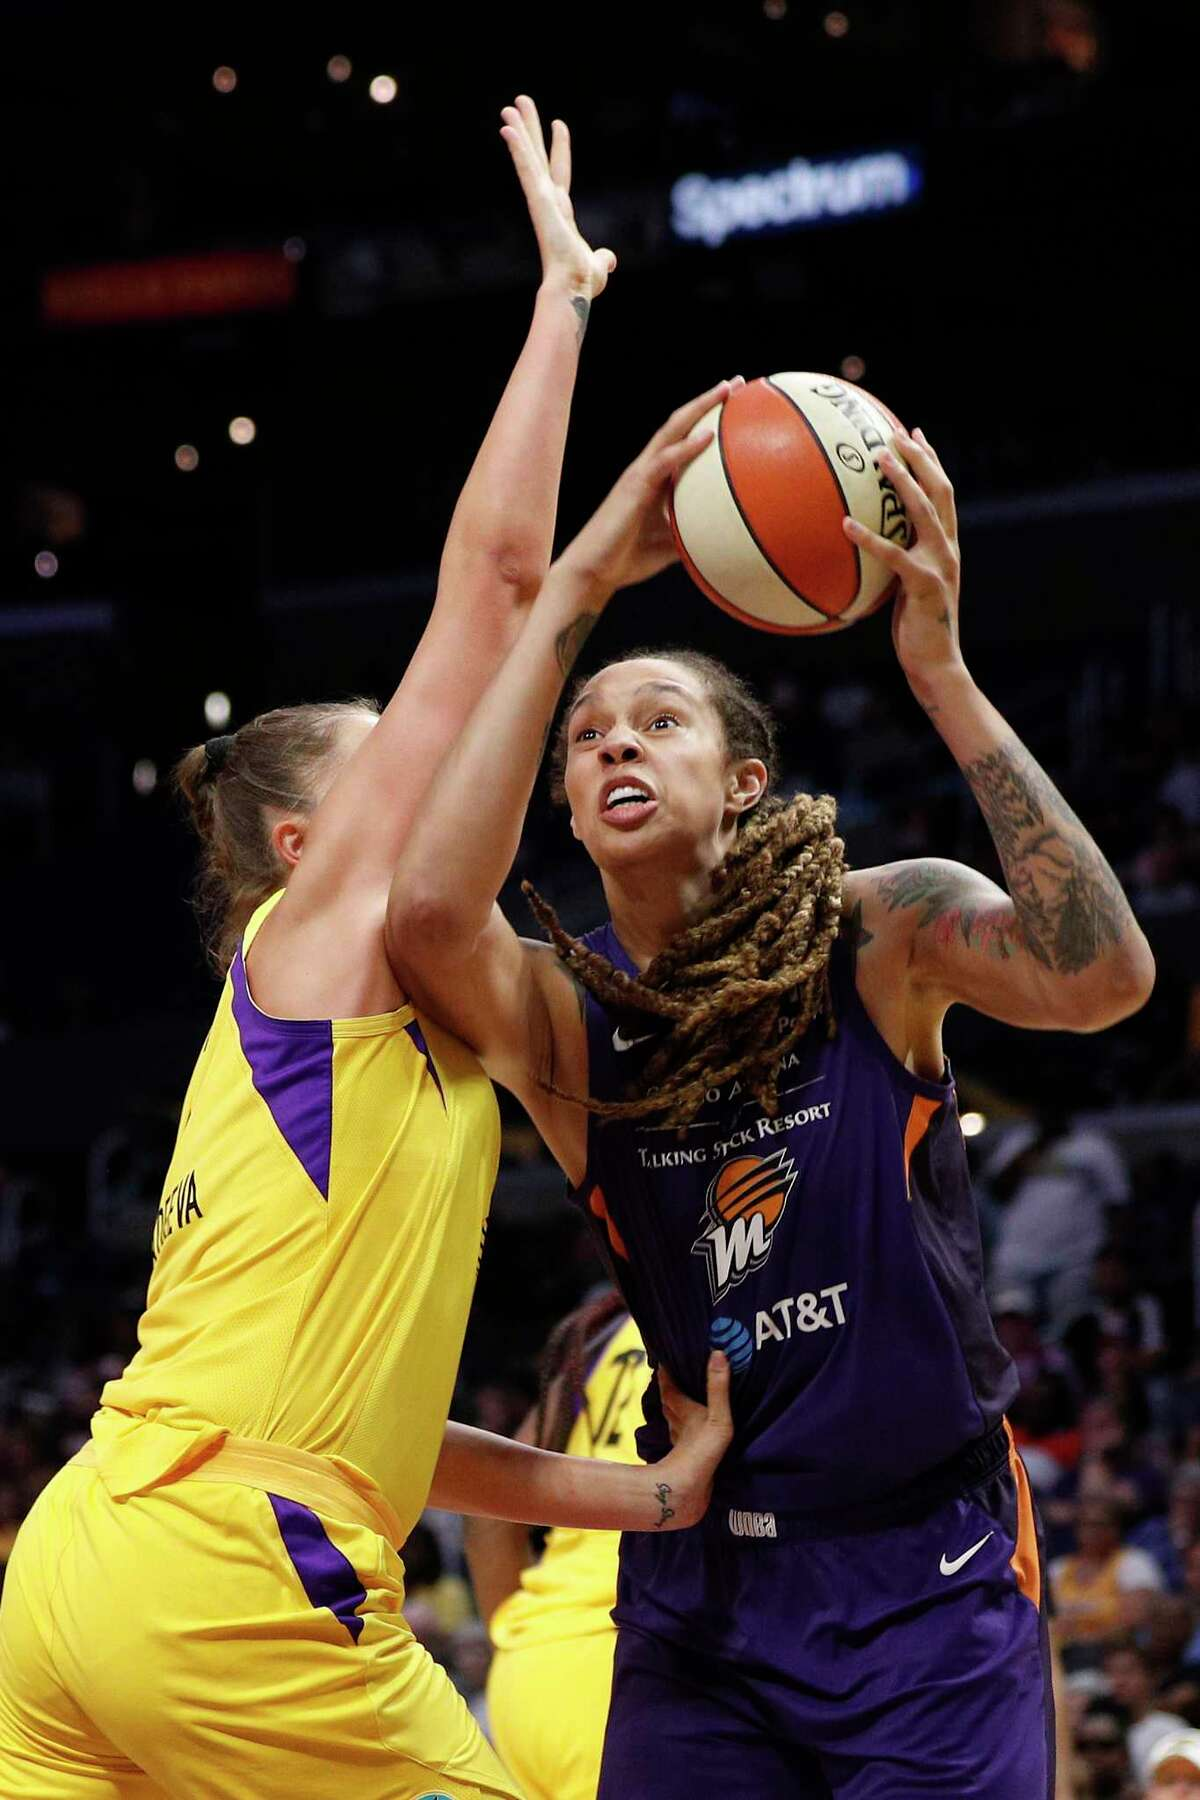 LOS ANGELES, CALIFORNIA - AUGUST 08: Center Brittney Griner #42 of the Phoenix Mercury looks for a shot defended by center Maria Vadeeva #7 of the Los Angeles Sparks at Staples Center on August 08, 2019 in Los Angeles, California. NOTE TO USER: User expressly acknowledges and agrees that, by downloading and or using this photograph, User is consenting to the terms and conditions of the Getty Images License Agreement. (Photo by Meg Oliphant/Getty Images)